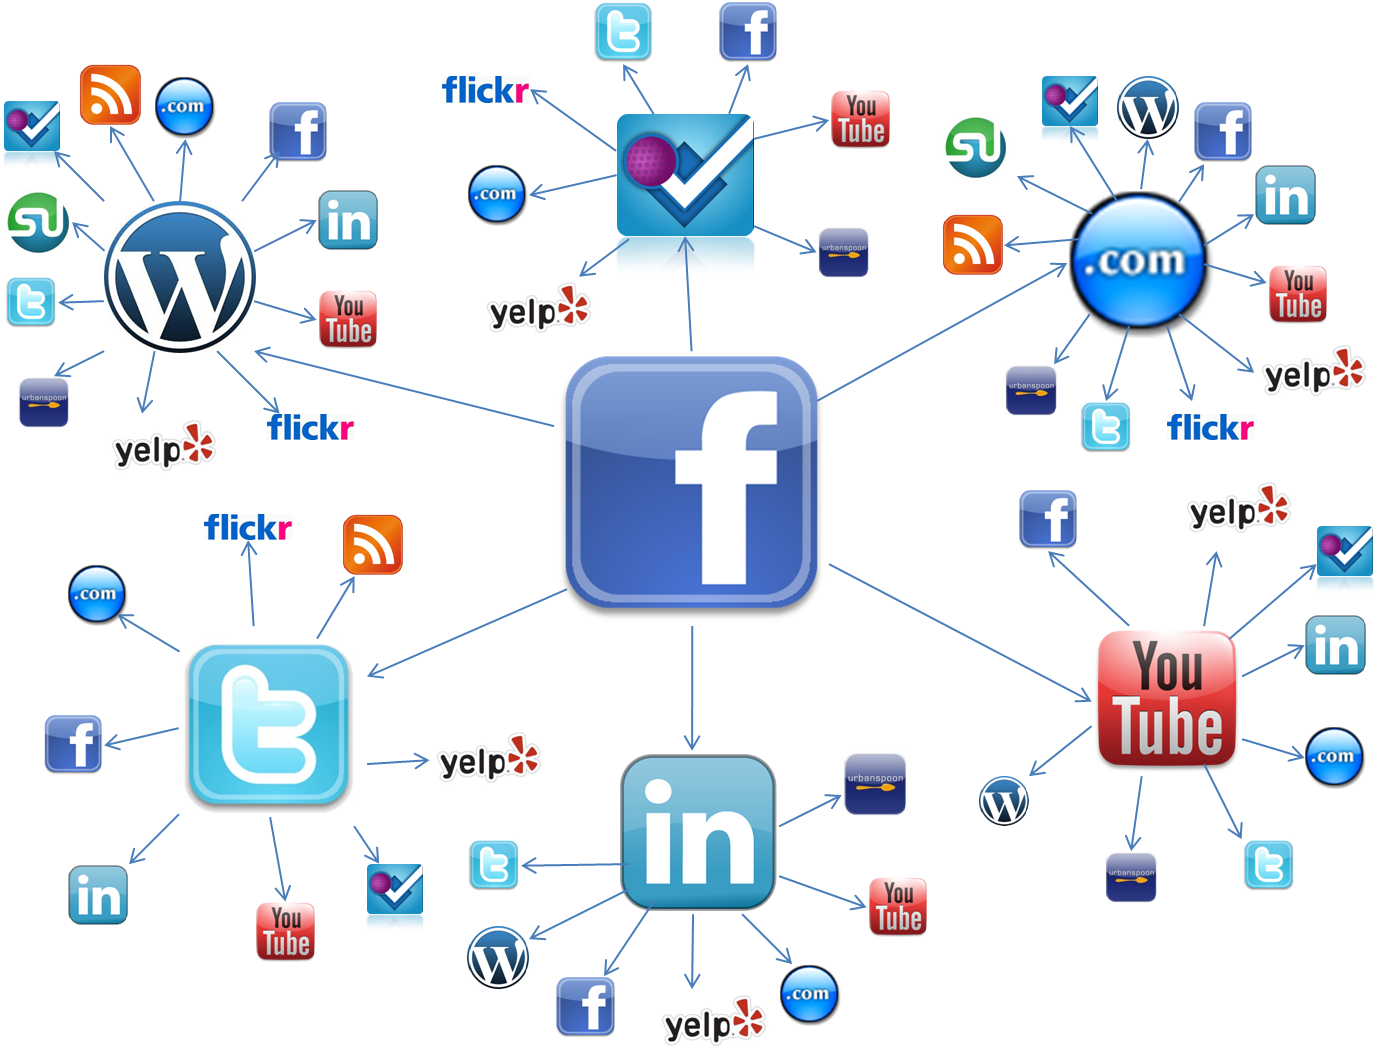 RMG – Redes-Sociales Graph 001